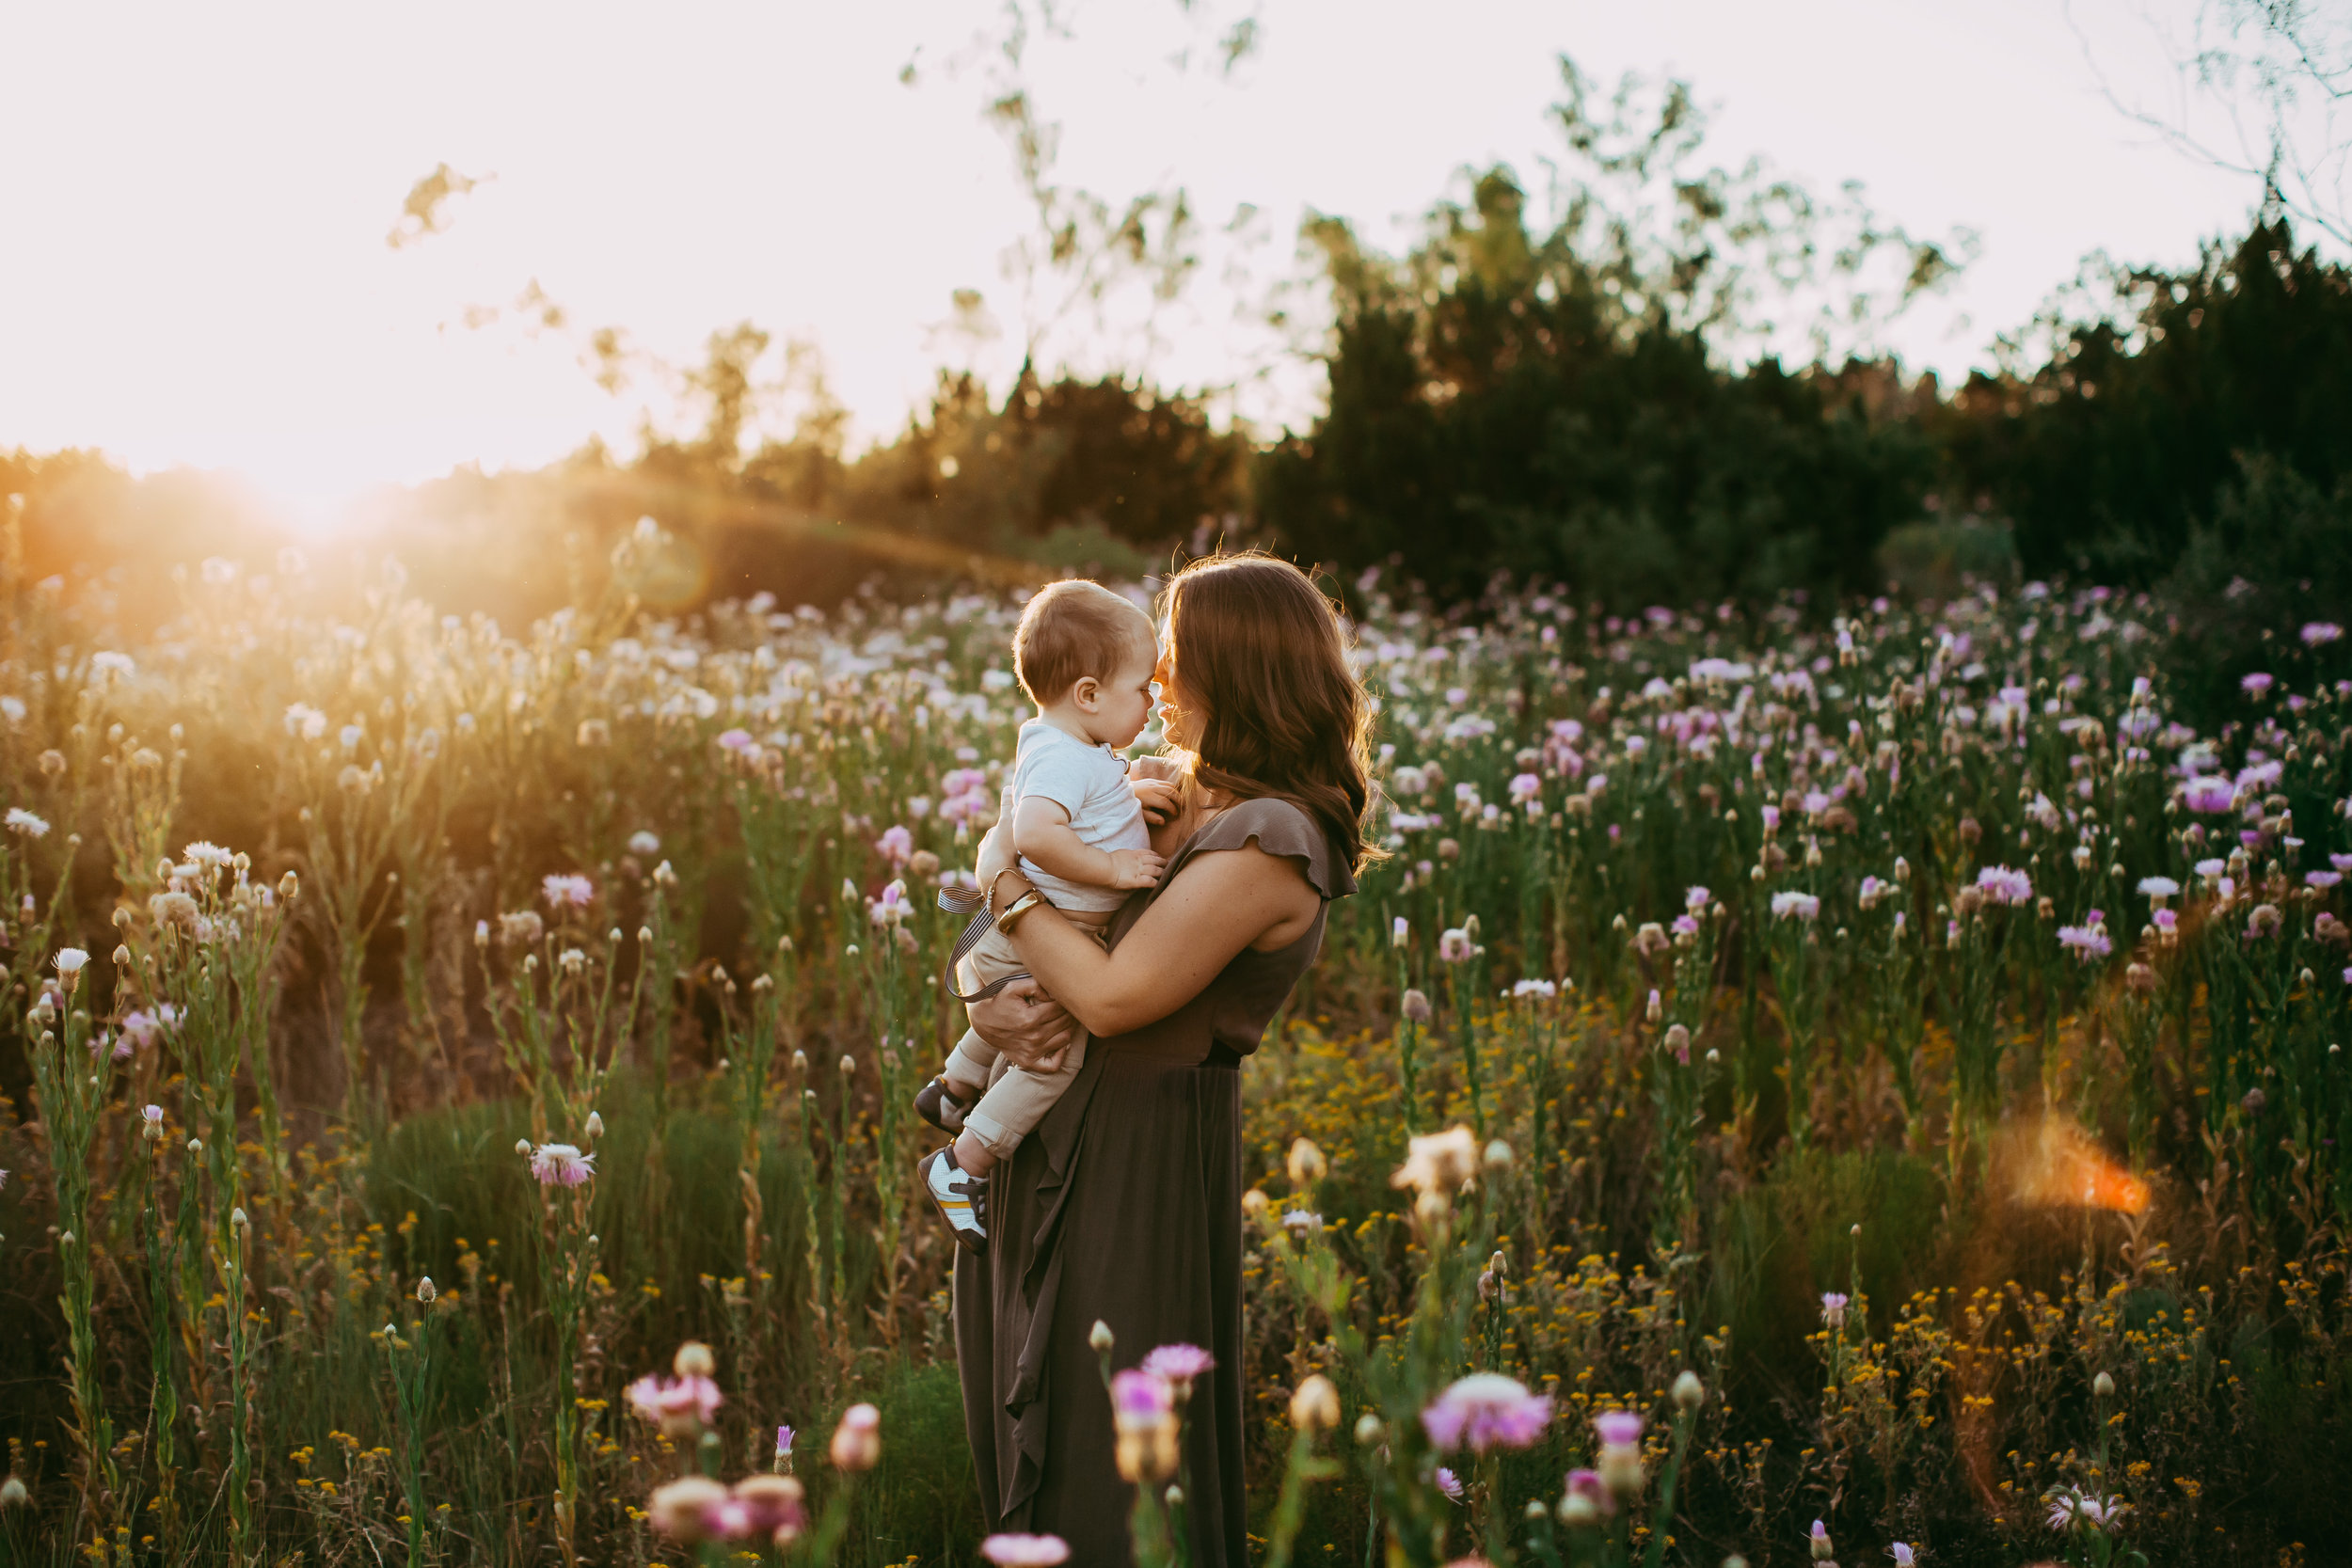 Wild flowers and gorgeous sunset with mom and baby boy surrounded by flowers #tealawardphotography #texassummerphotographer #pictureseason #amarillophotographer #amarillofamilyphotographer #emotionalphotography #engagementphotography #couplesphotography #pickingaseasonforphotosessions #whatsimportant #everythingtogether #pickingcolorsforphotos #summerphotos #greeneryinphotos